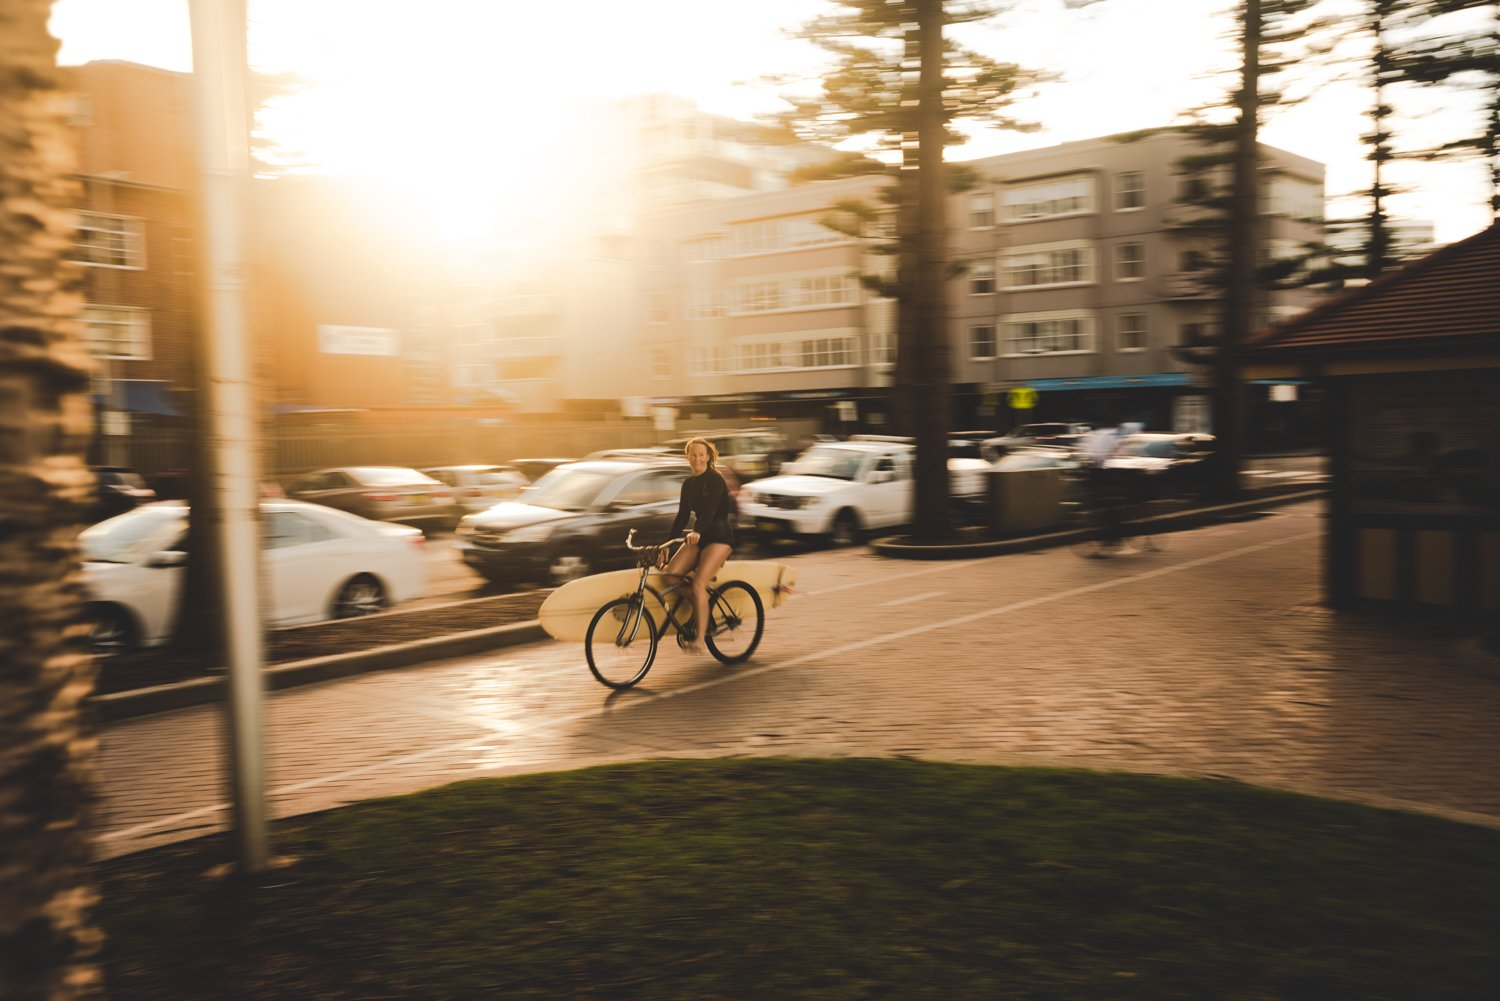 Girl riding bicycle with surfboard rack during sunset on promenade in Manly Sydney